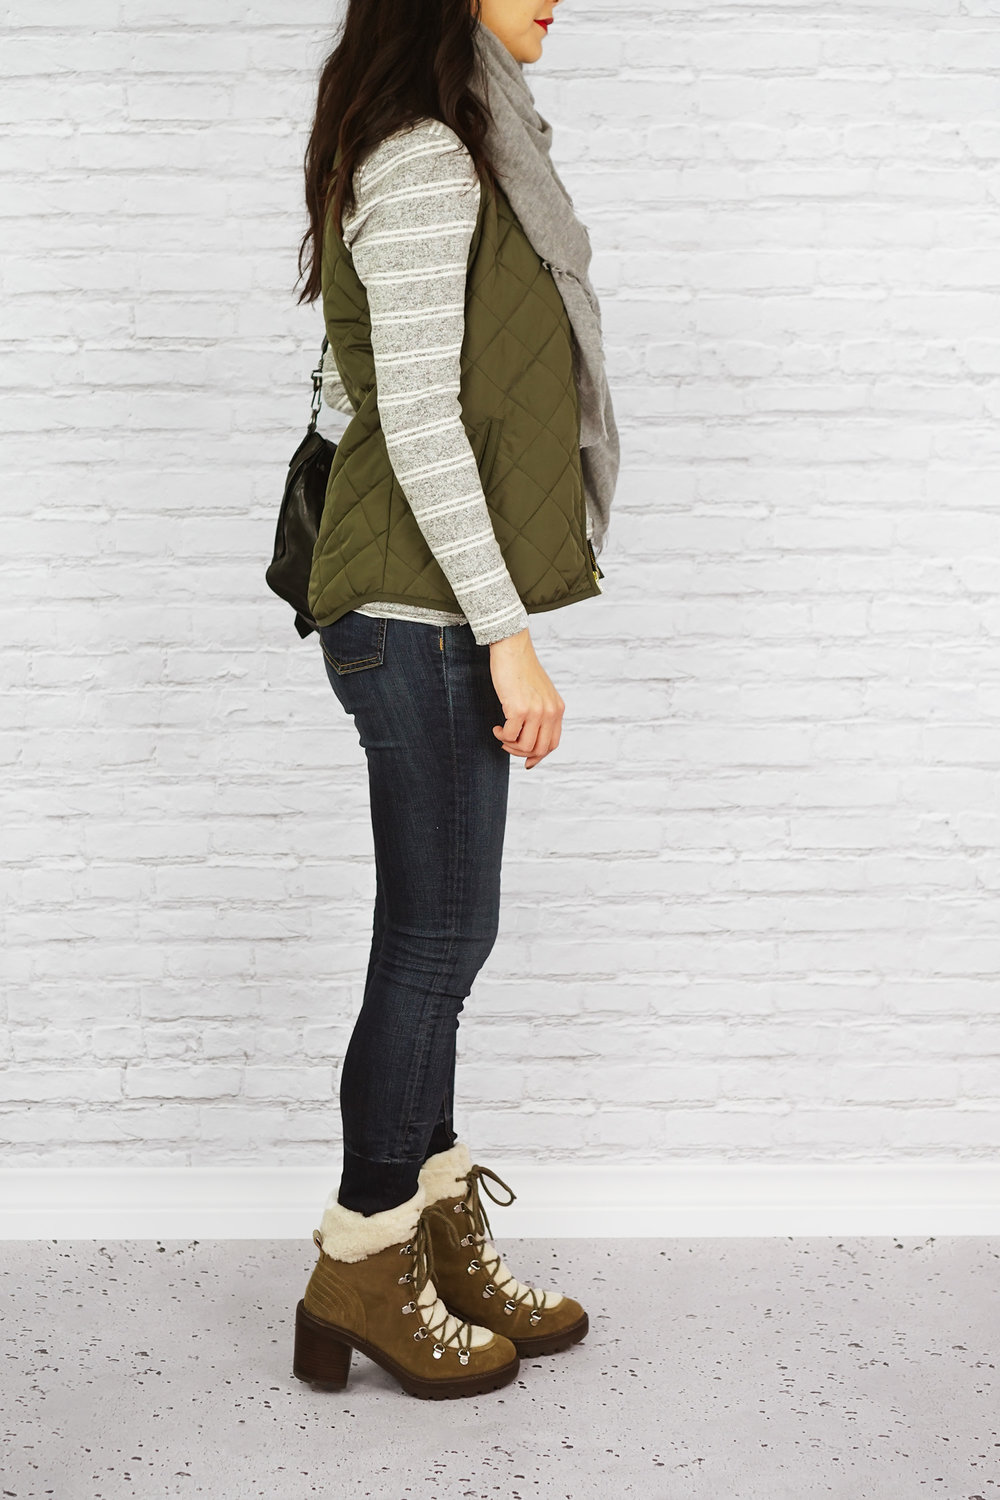 Cute Concealed Carry Looks for Winter